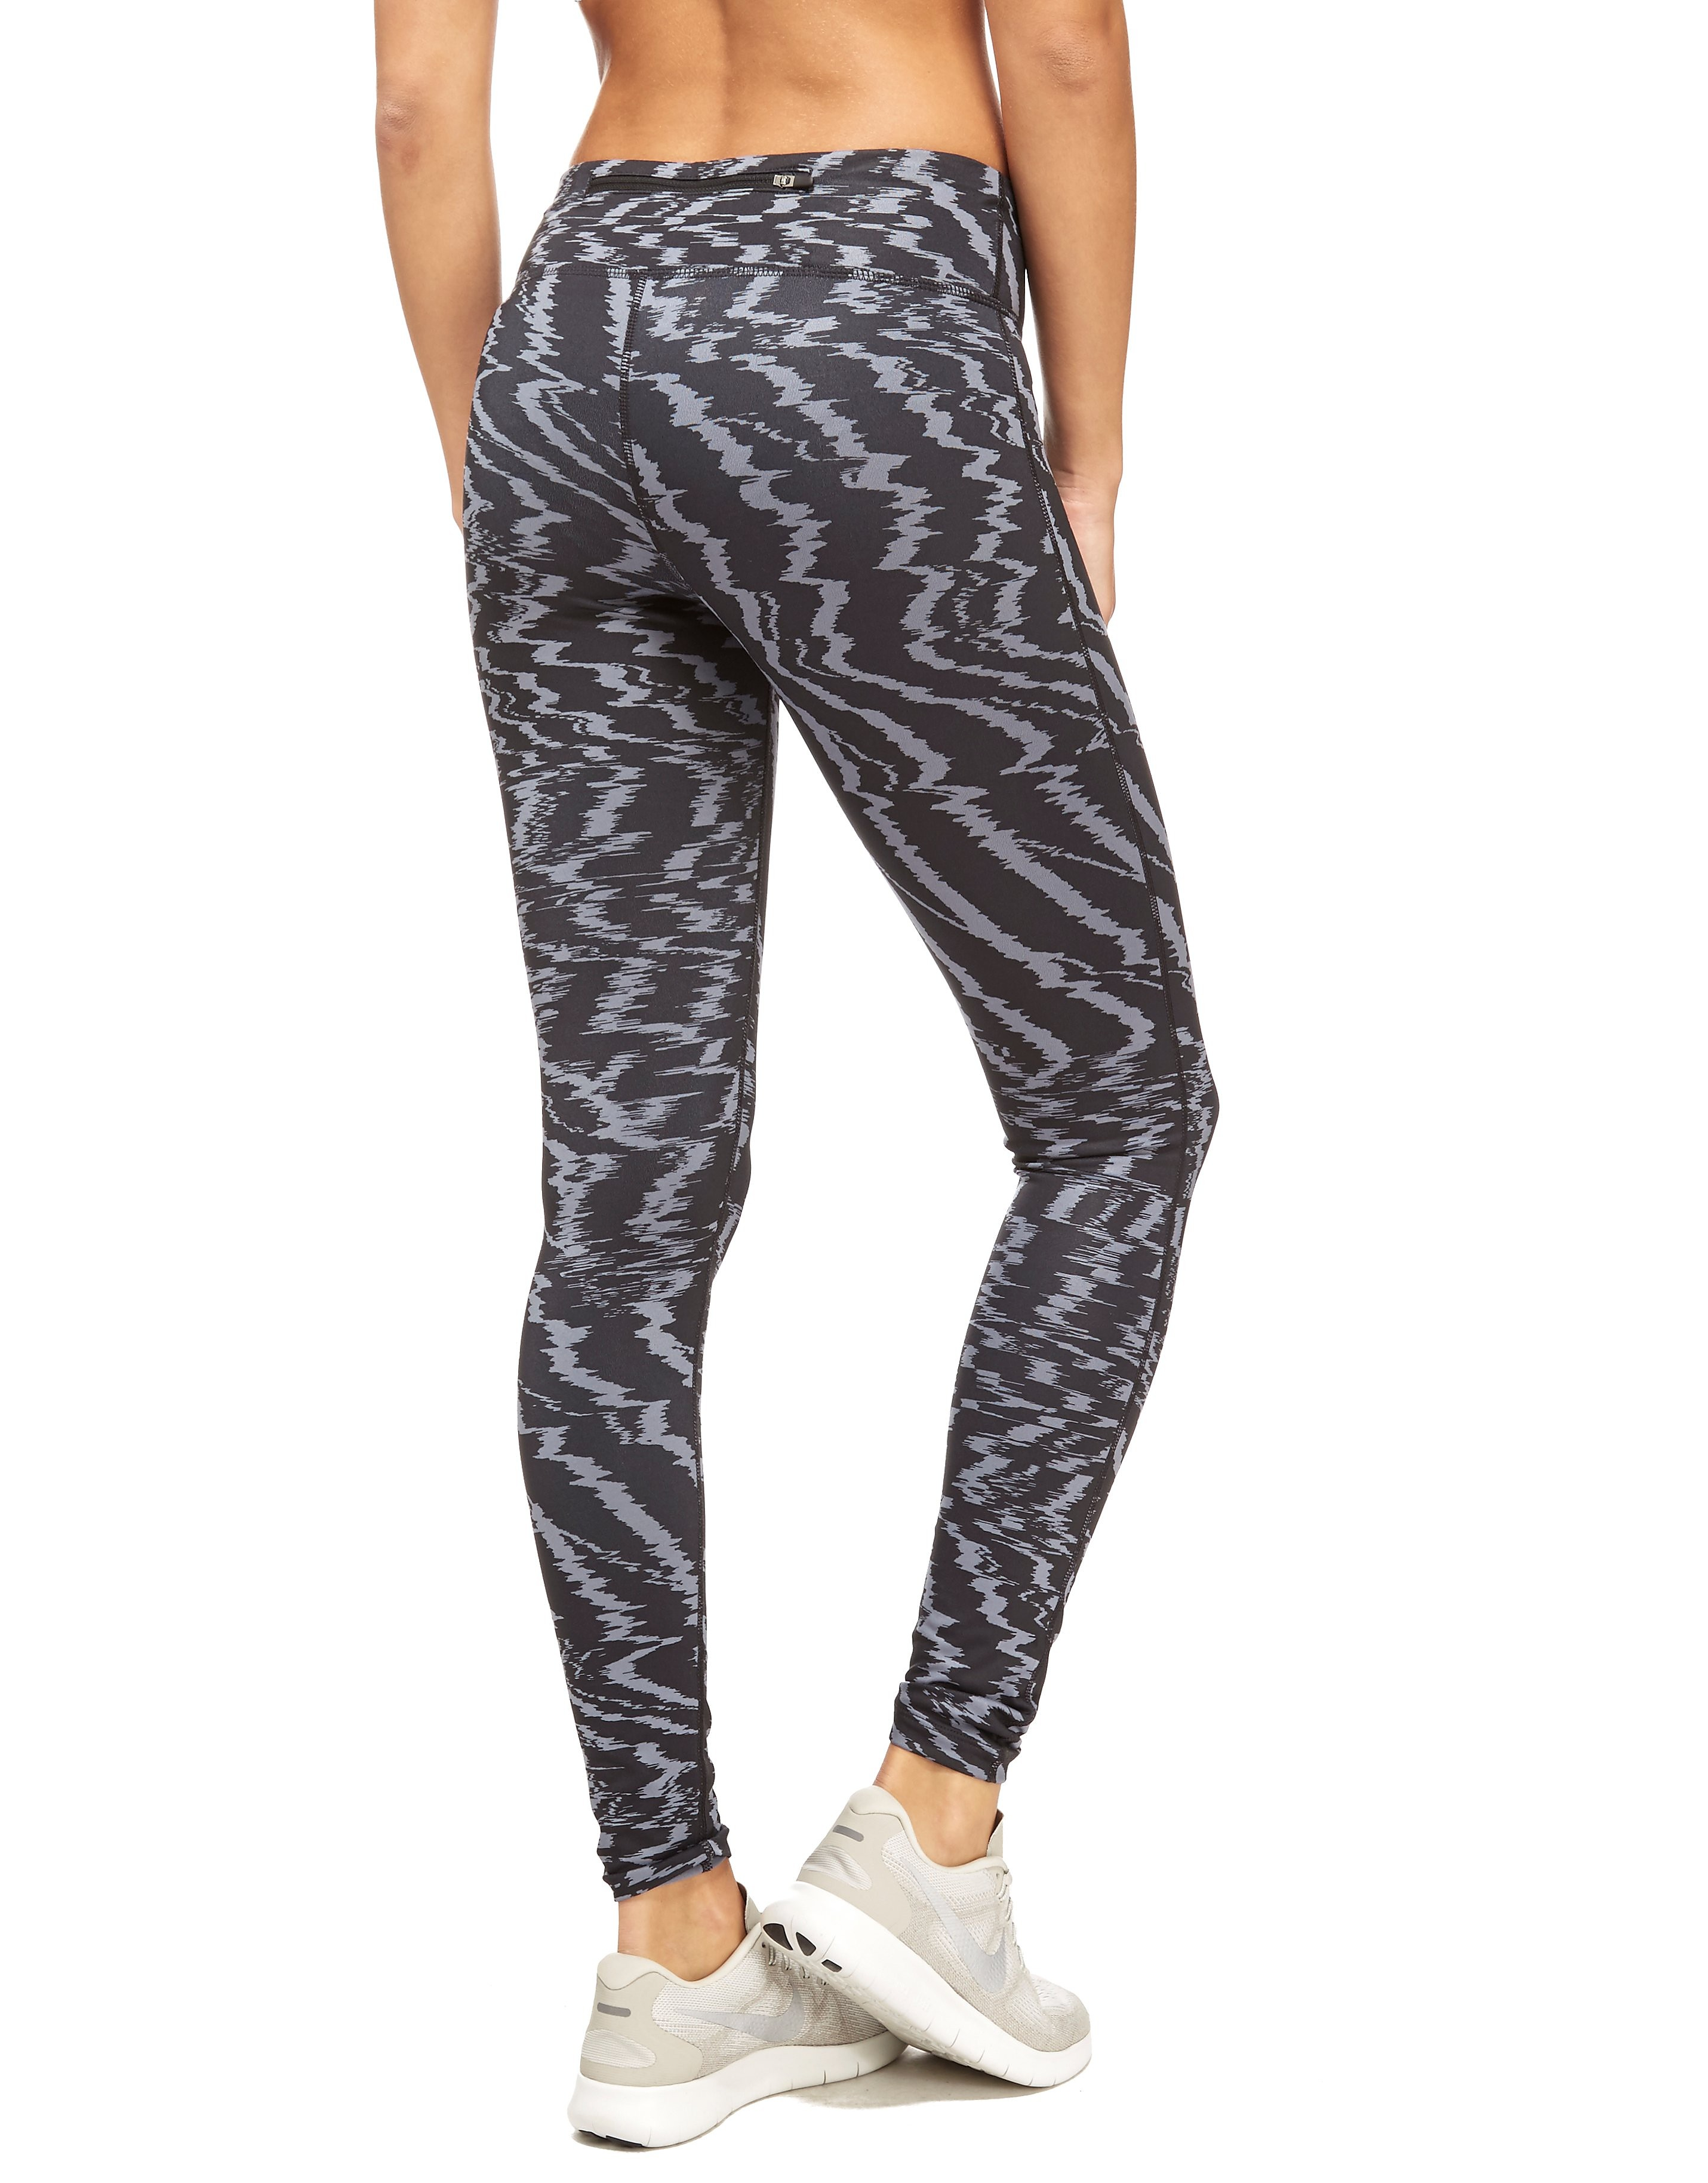 Nike Print Essentials Tights